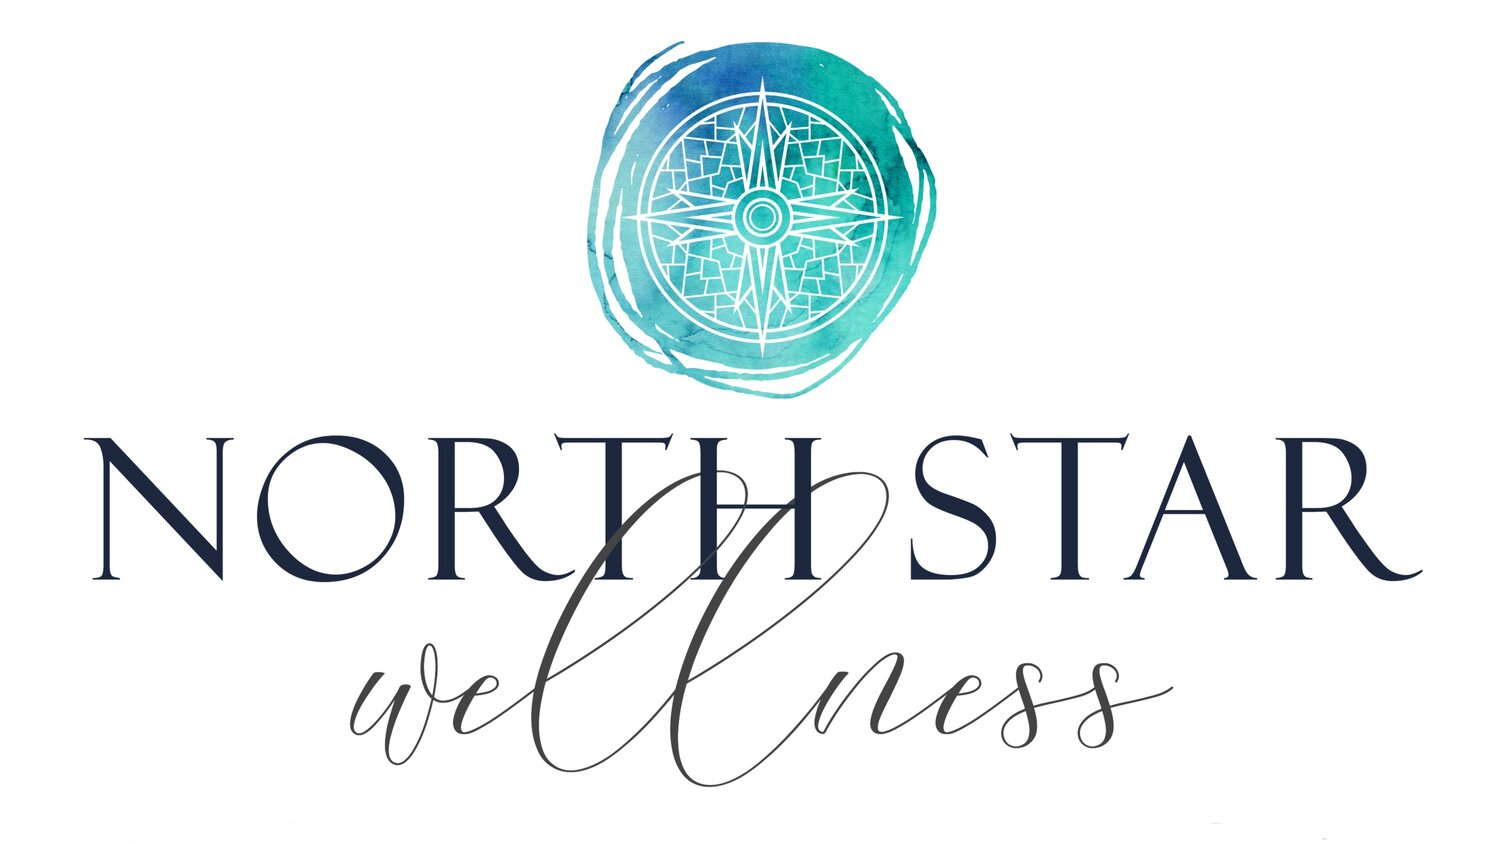 North Star Wellness ⎮ Postpartum Counseling ⎮ Breastfeeding Help ⎮ Gilbert, AZ